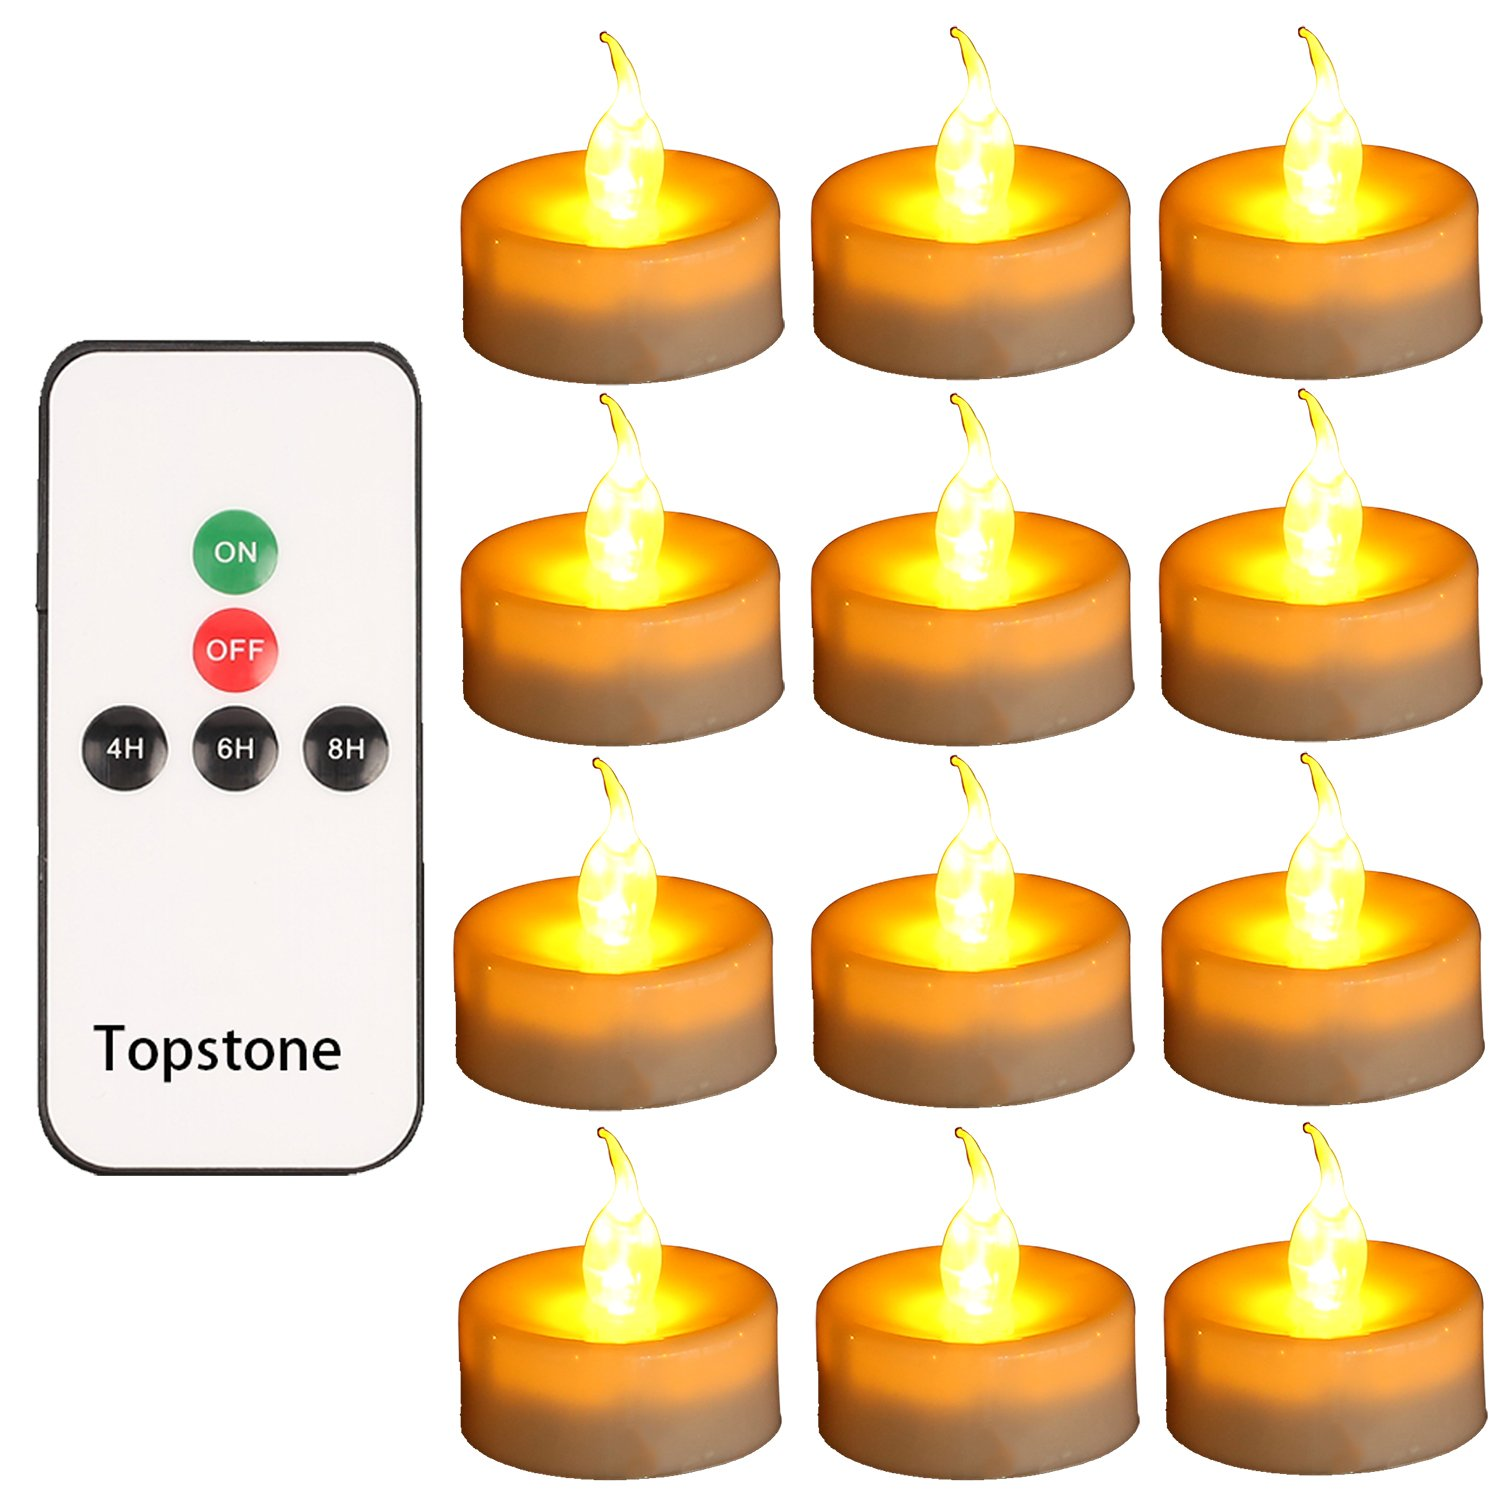 Topstone Tealight Candles with Flickering Amber Led Bulb and Timer,Remote Control,Electric Fake Candle Battery Powered Flameless Candles,Pack of 18